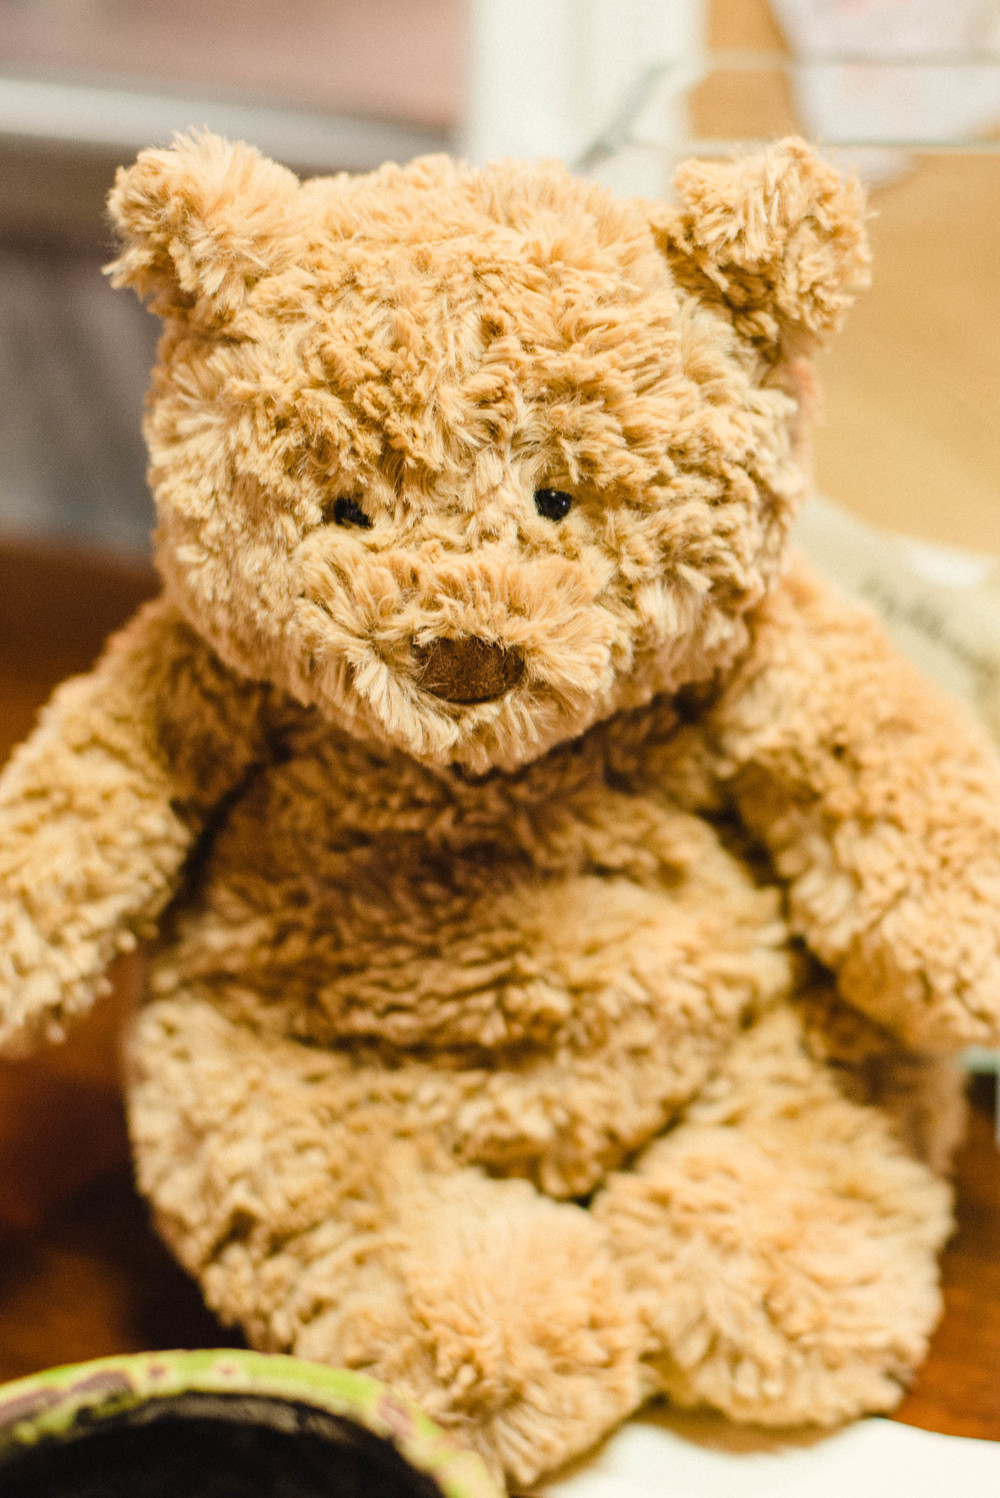 Name the Teddy Bear Baby Shower Game